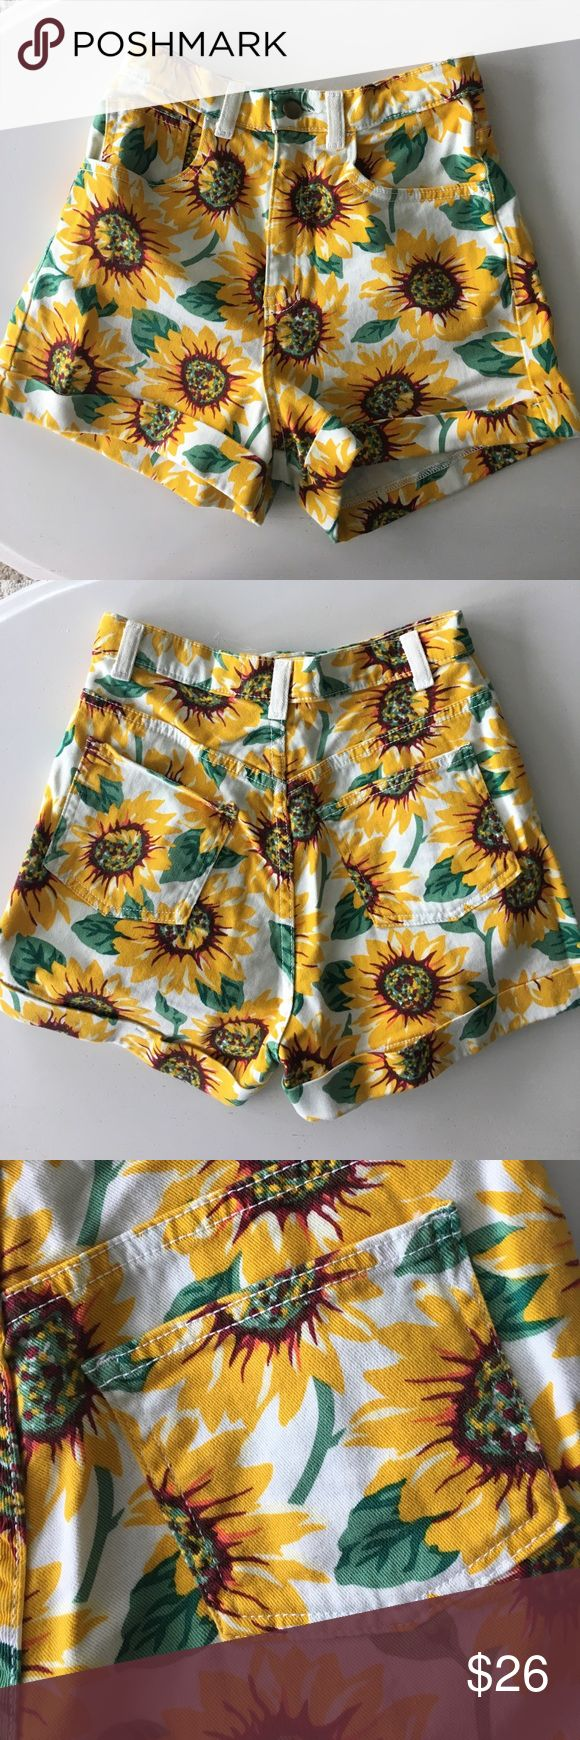 American Apparel high wasted shorts never worn high waisted sunflower shorts from American Apparel size 26/27 American Apparel Shorts Jean Shorts